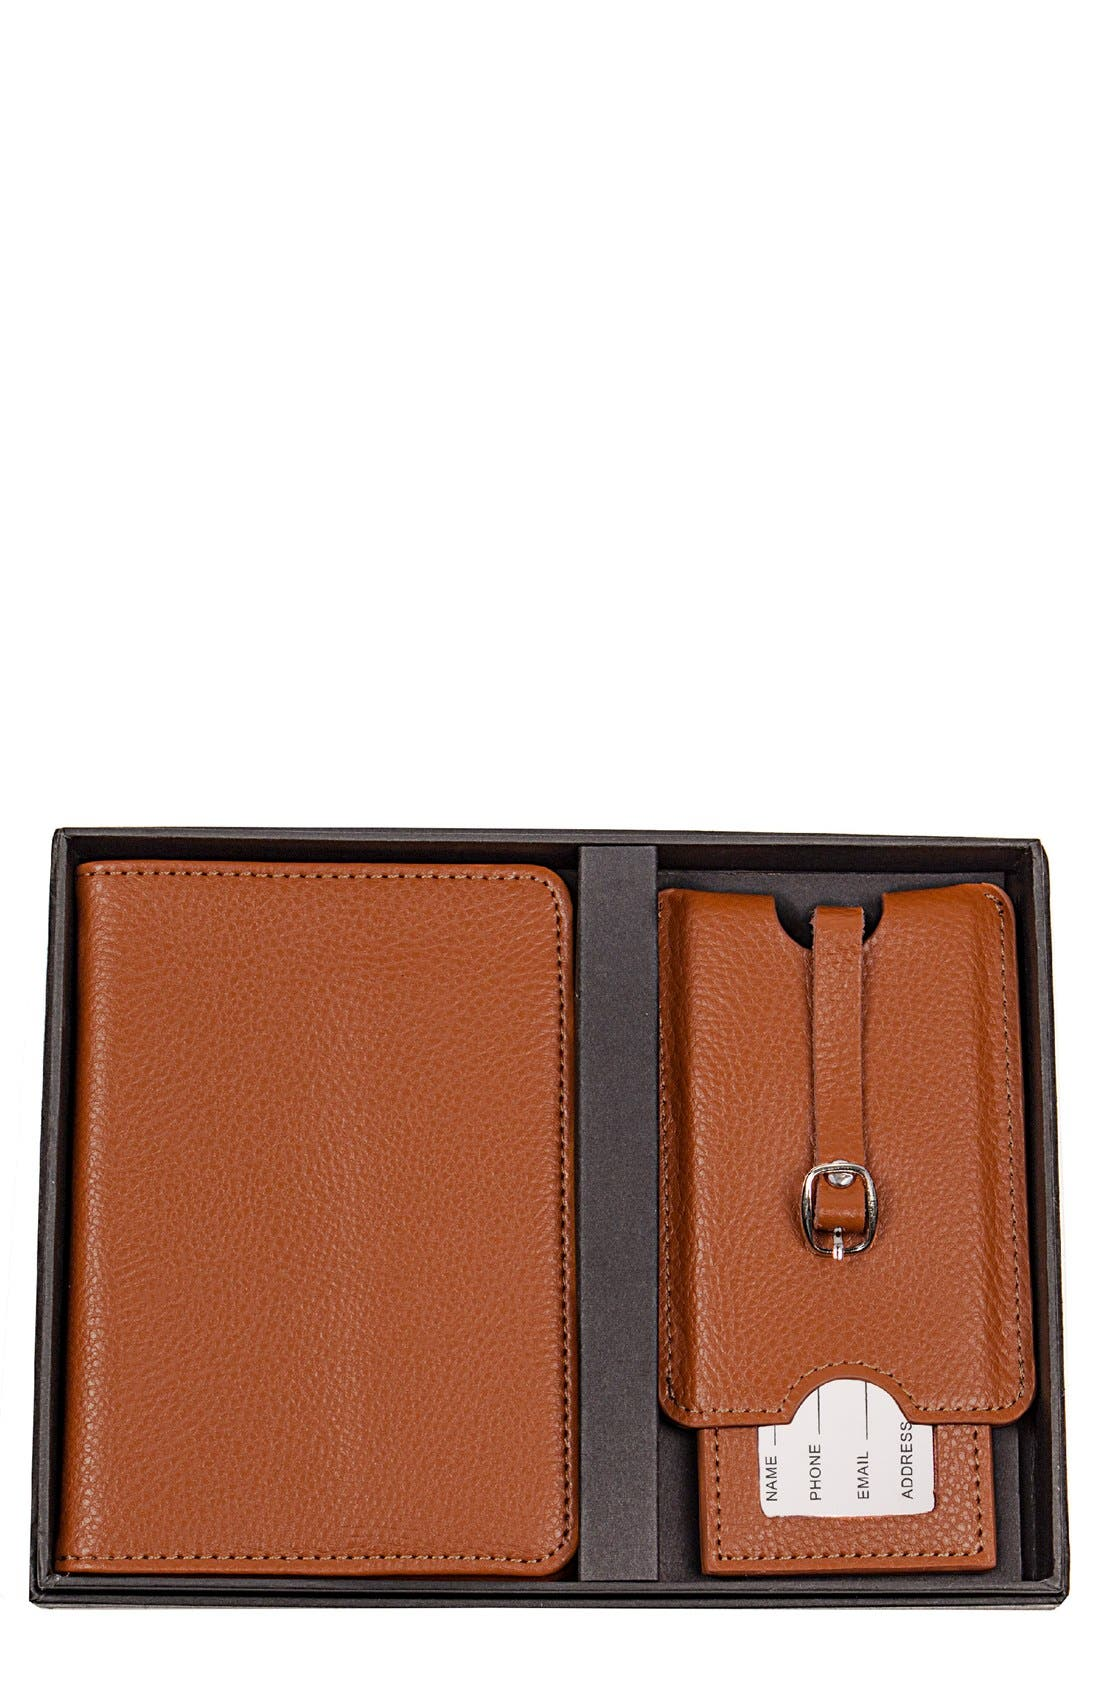 CATHY'S CONCEPTS,                             Monogram Passport Case & Luggage Tag,                             Main thumbnail 1, color,                             200